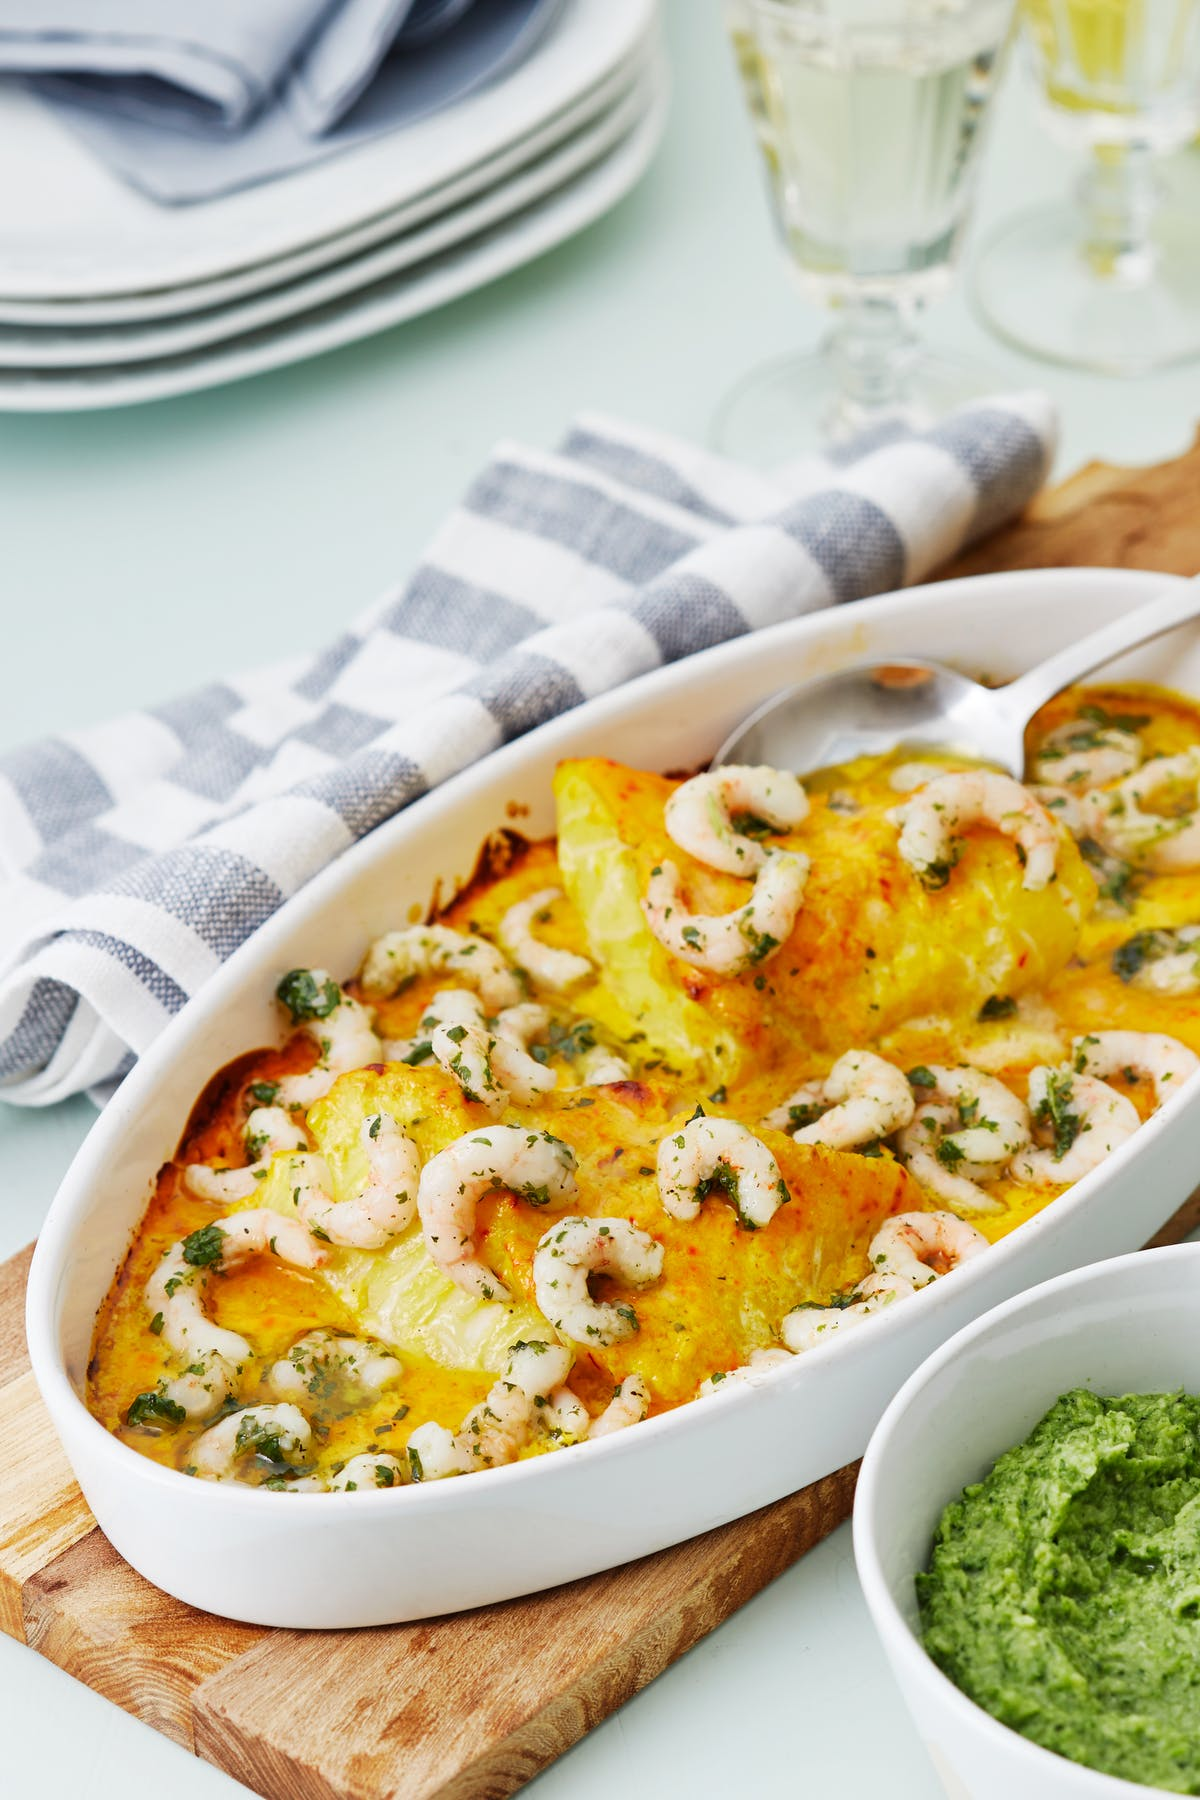 Creamy fish and shrimp casserole with saffron